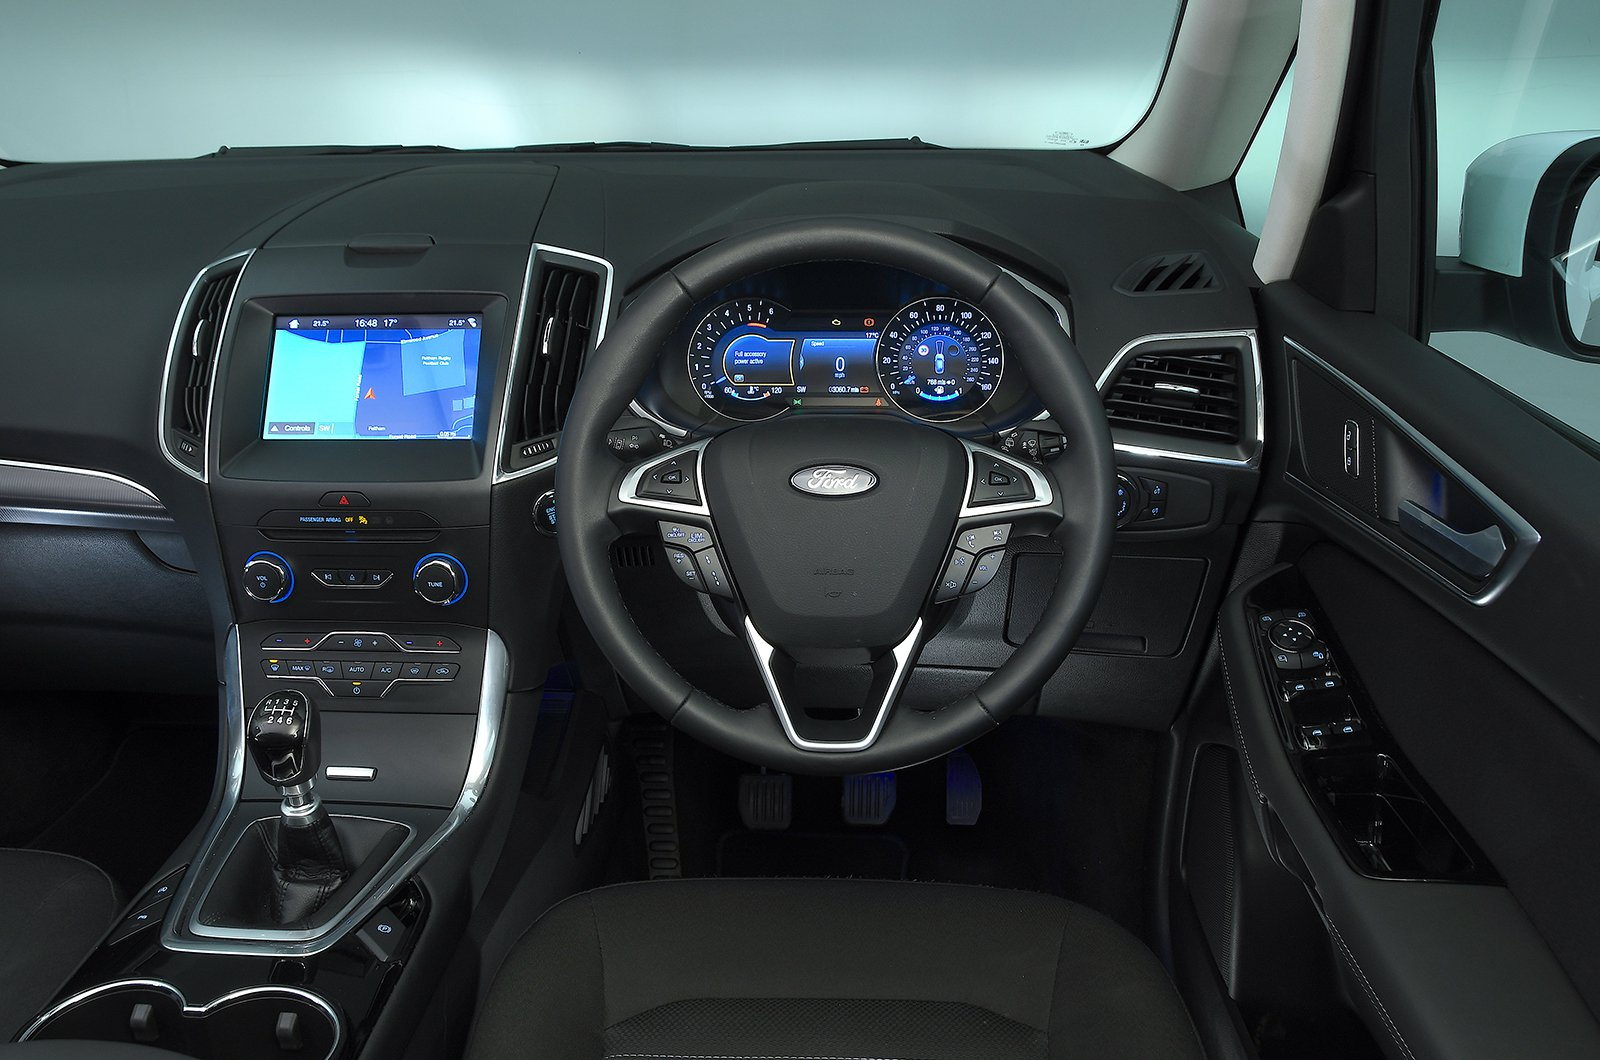 Used Ford Galaxy interior